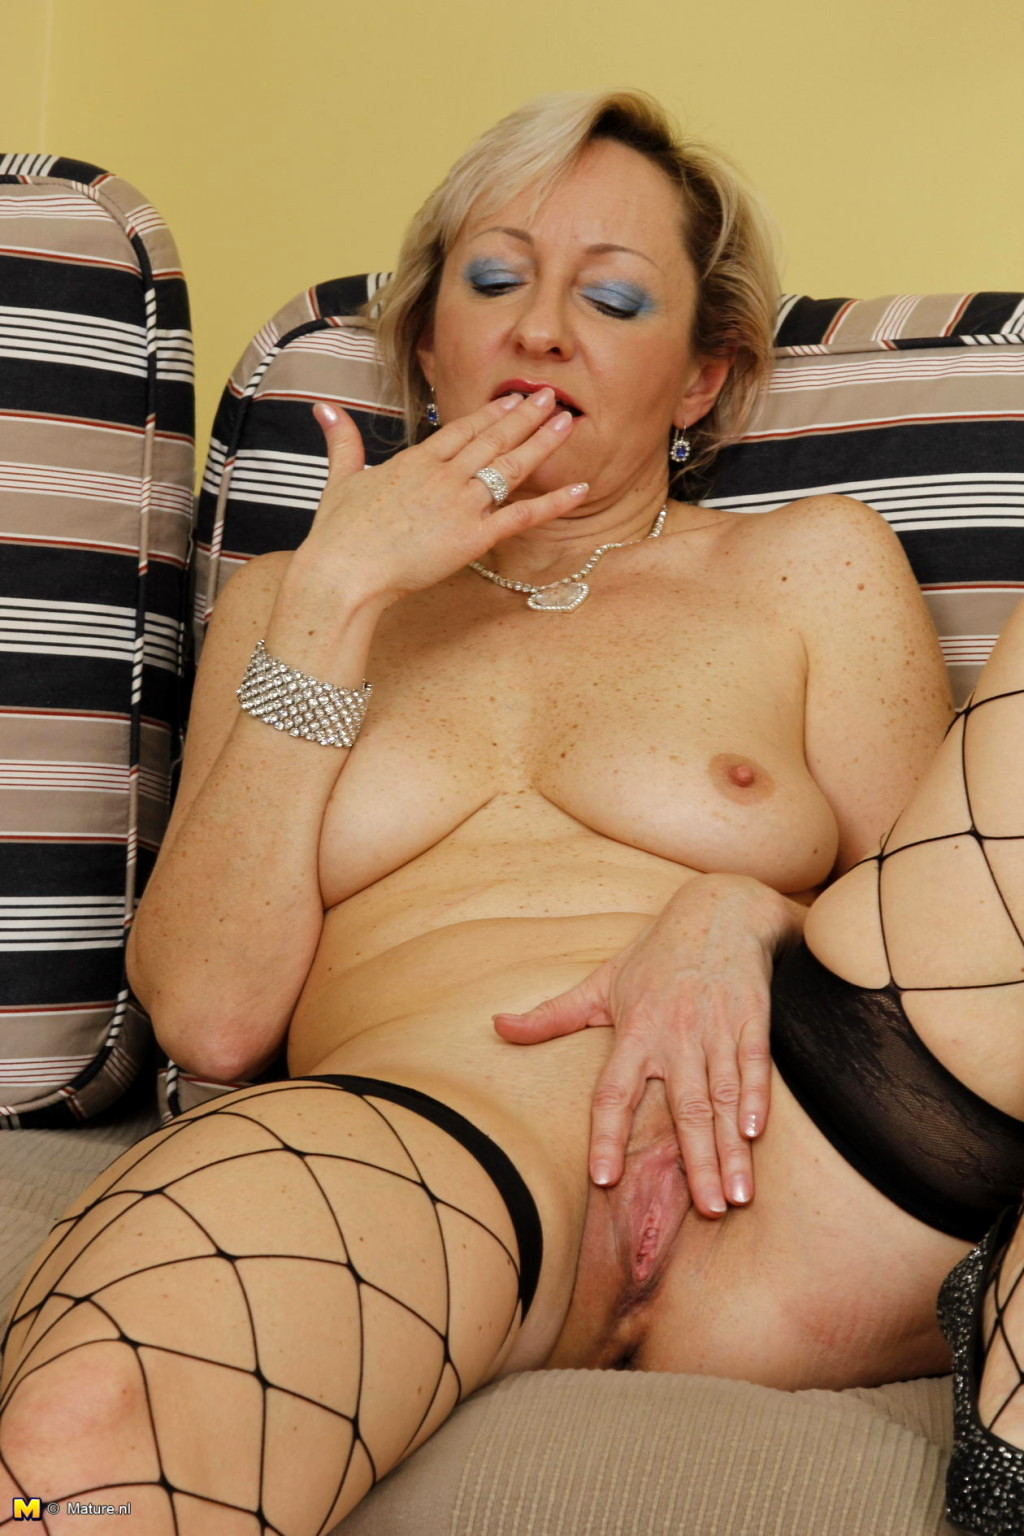 Babe Today Mature Nl Maturenl Model Hottest Mature -6015